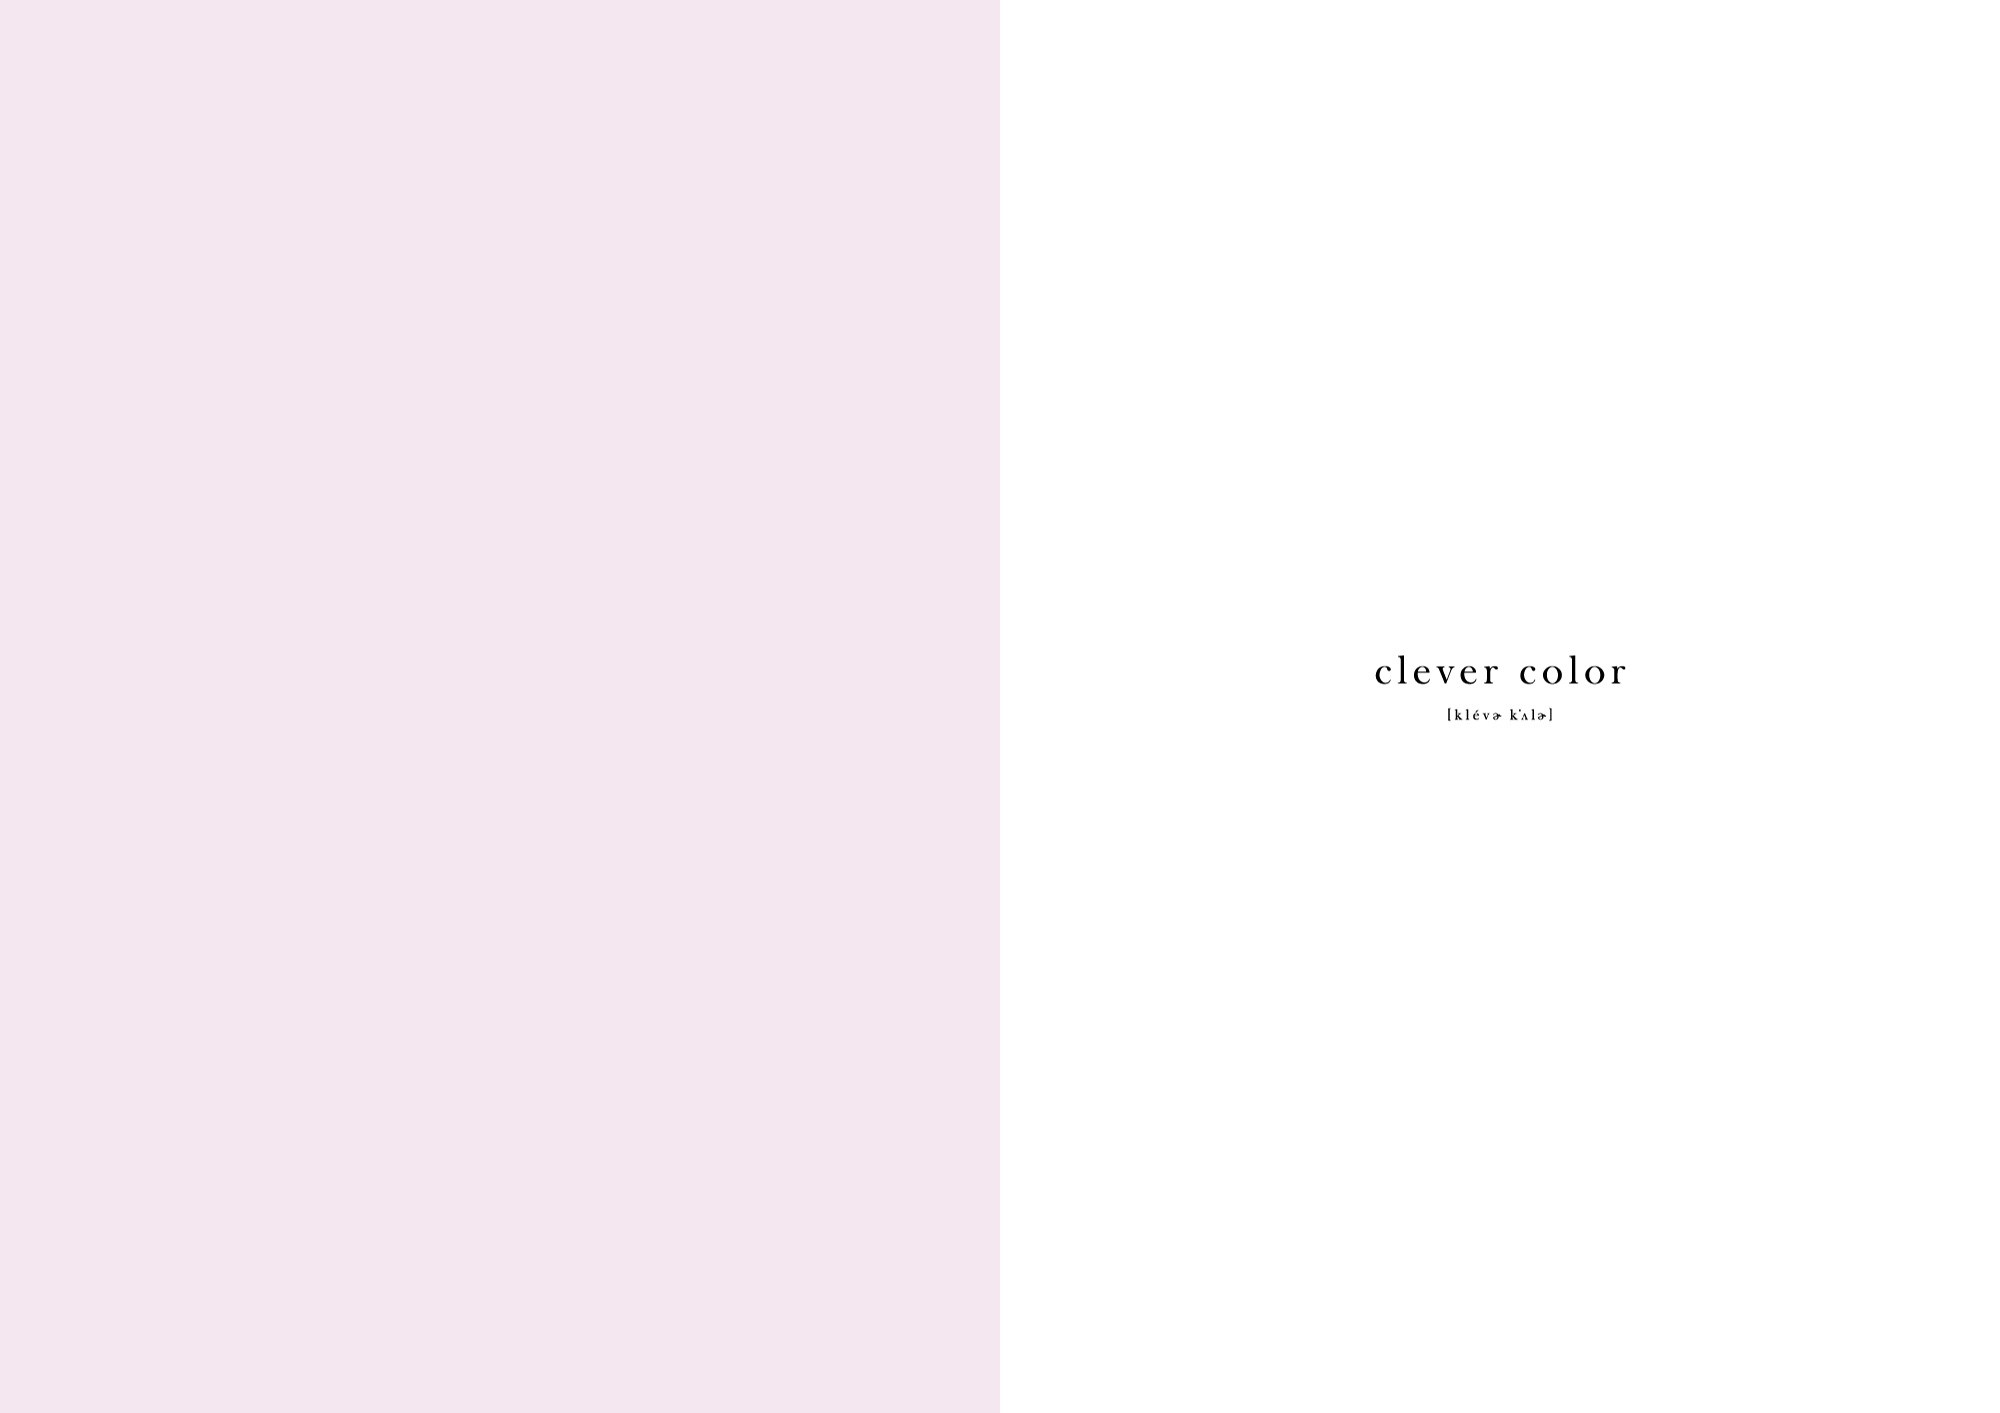 AW CLEVER PINK JOURNAL 01